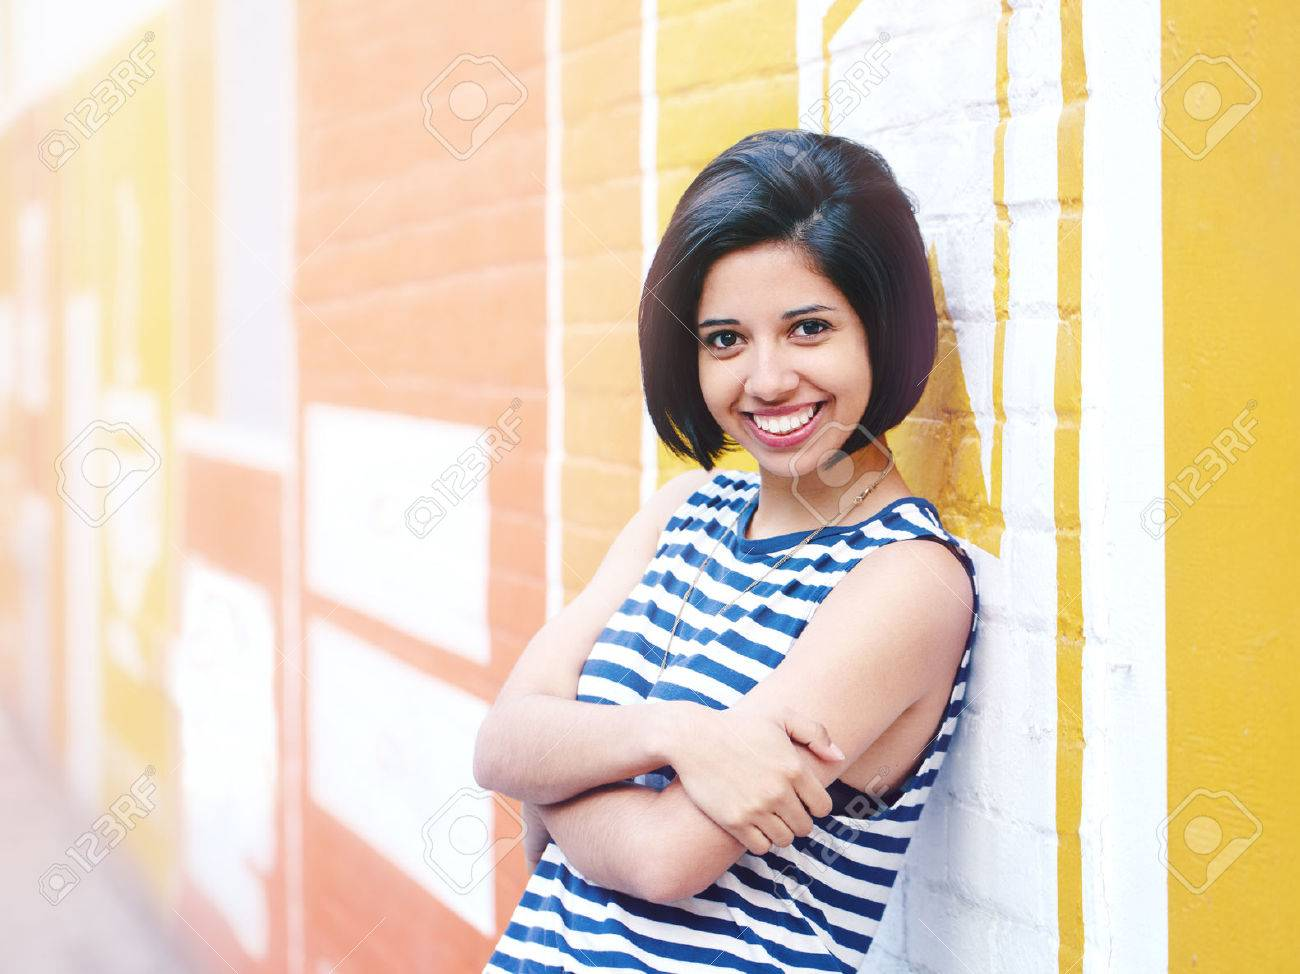 Portrait of beautiful smiling young hipster latin hispanic girl woman with short hair bob, in blue white striped tshirt, leaning on brick wall in city looking in camera - 64481692